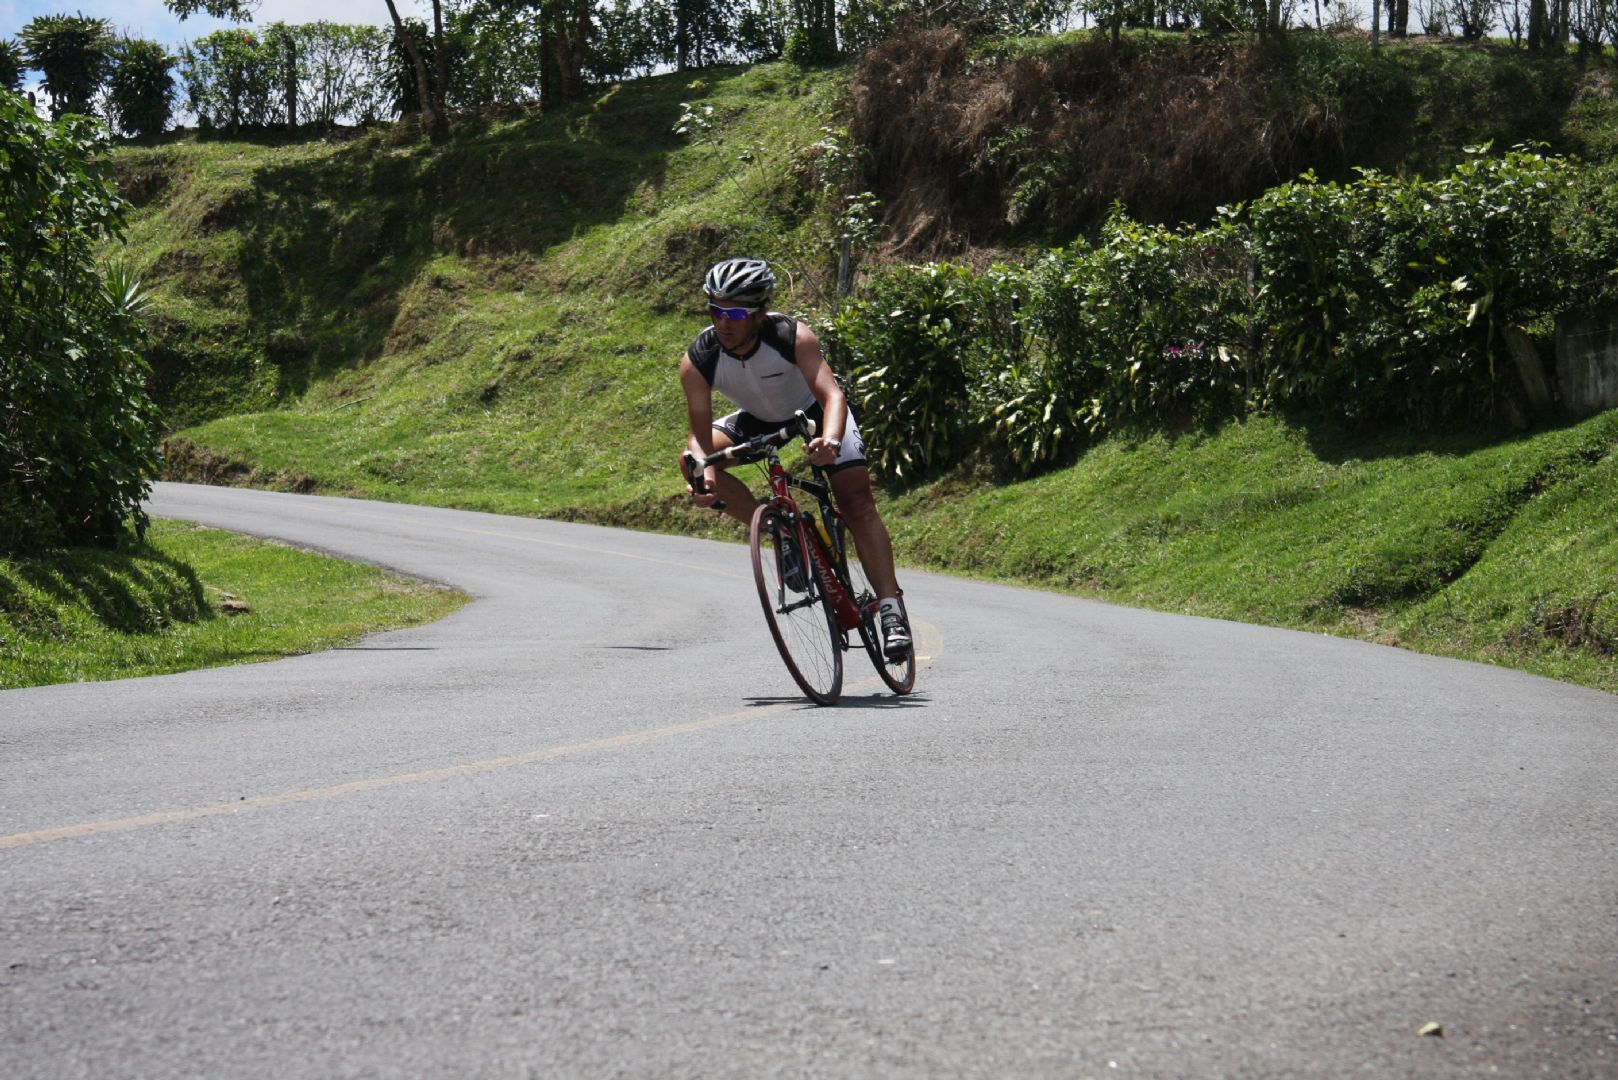 azores road.jpg - The Azores - Lakes and Volcanoes - Self-Guided Road Cycling Holiday - Road Cycling